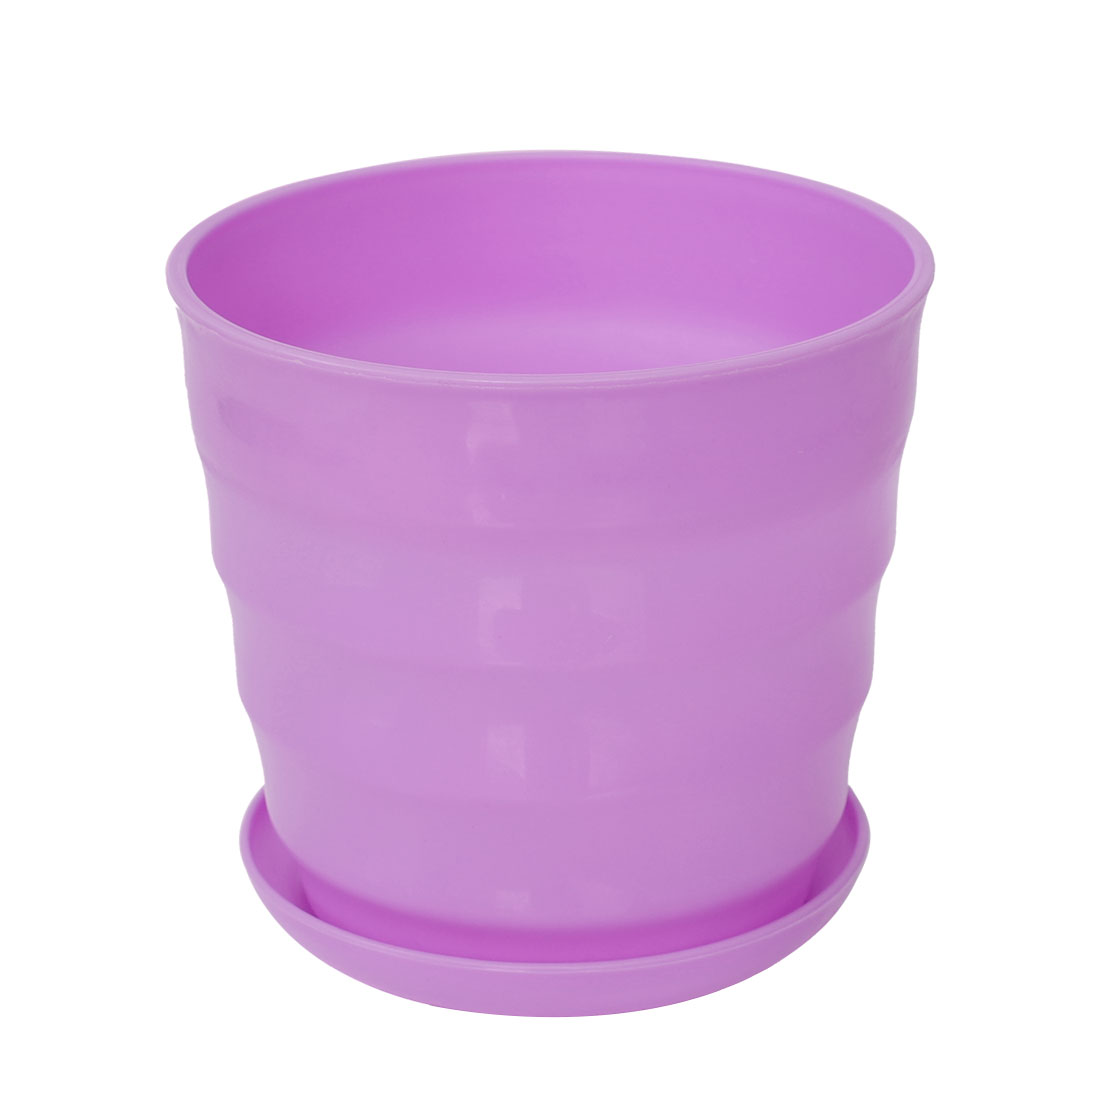 5 Inch Dia Purple Plastic Round Plant Planter Flower Pot Home Office Garden Decor